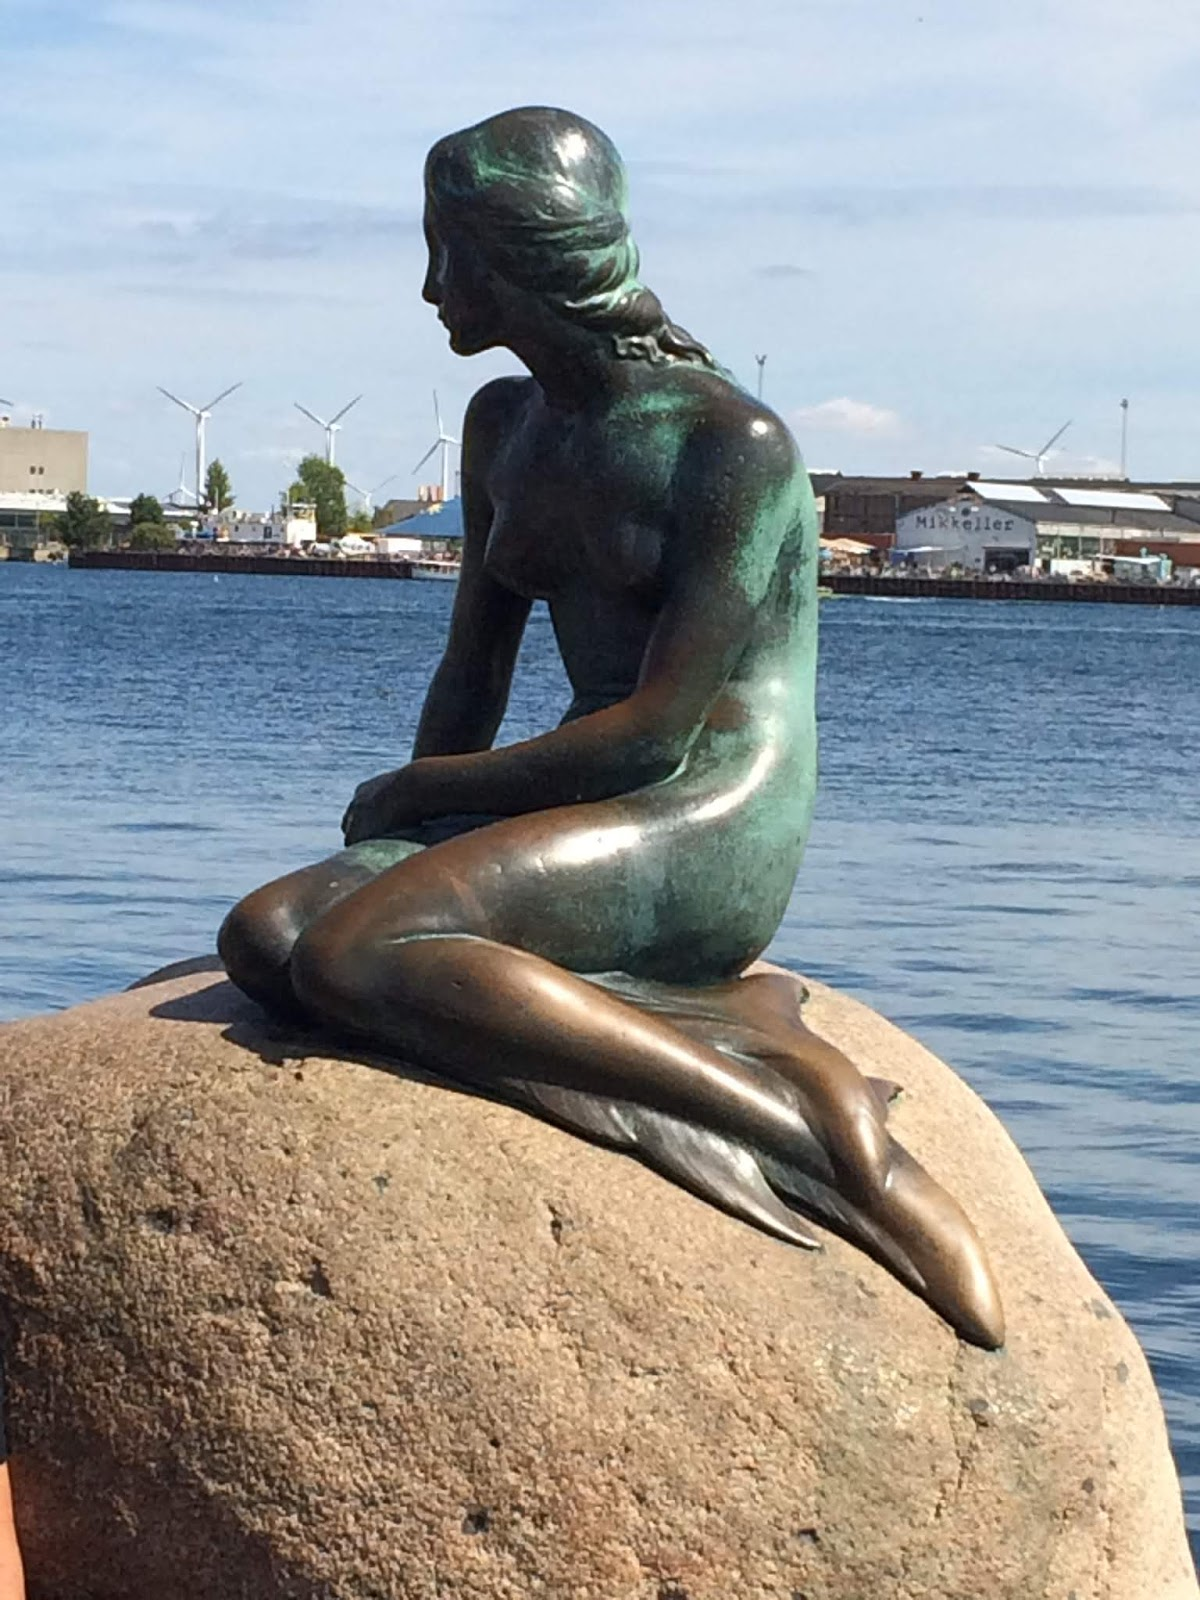 Photo of The Little Mermaid statue taken from the right